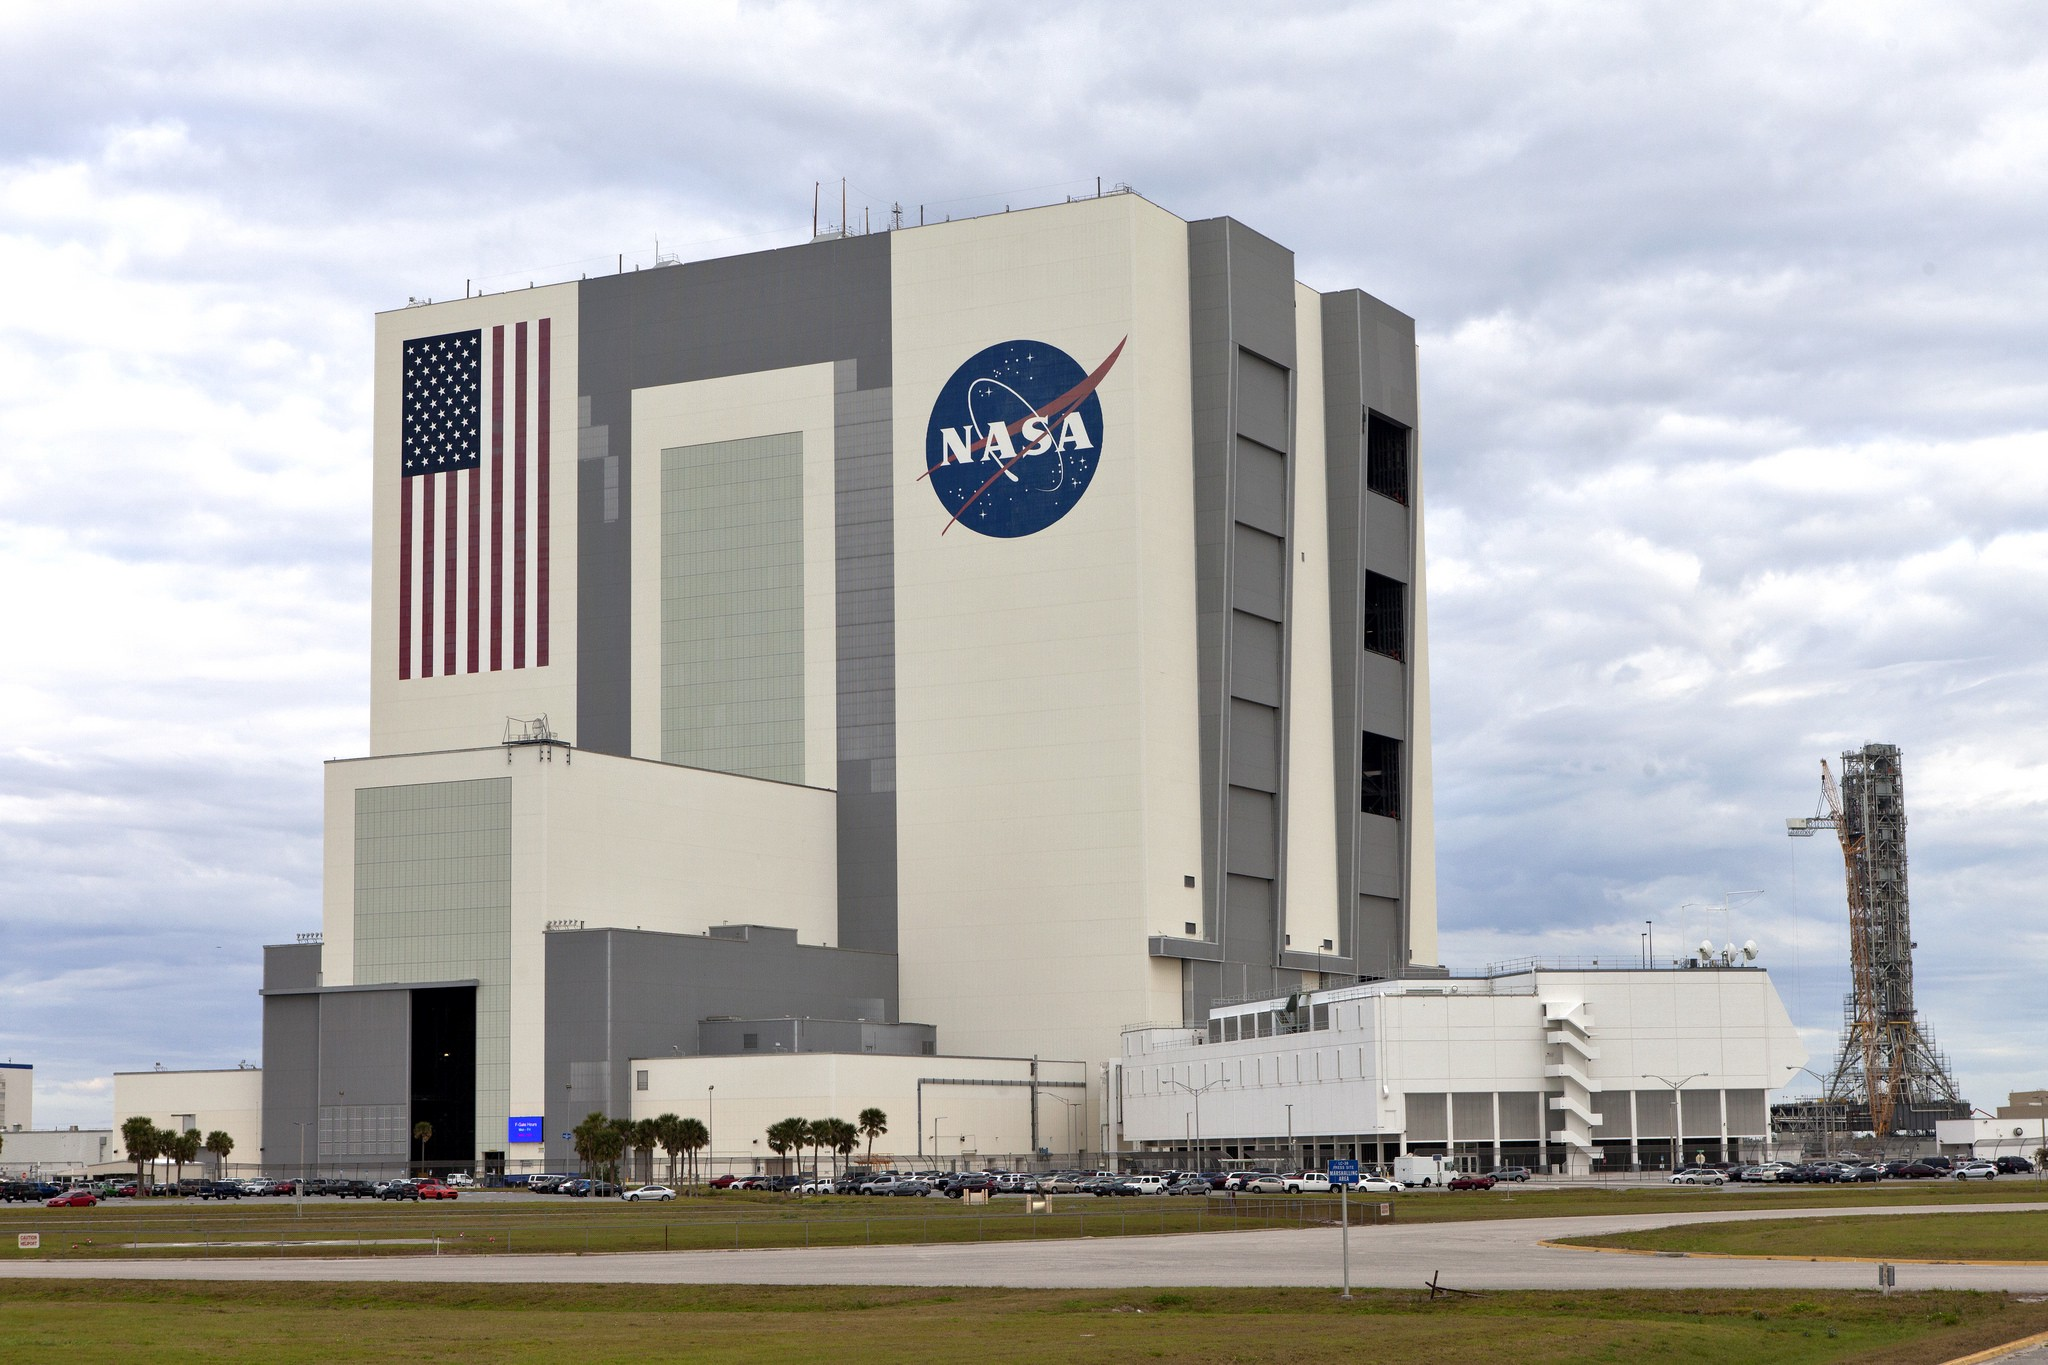 The Vertical Assembly Building (VAB) at NASA's Kennedy Space Center. Image credit: NASA/Bill White